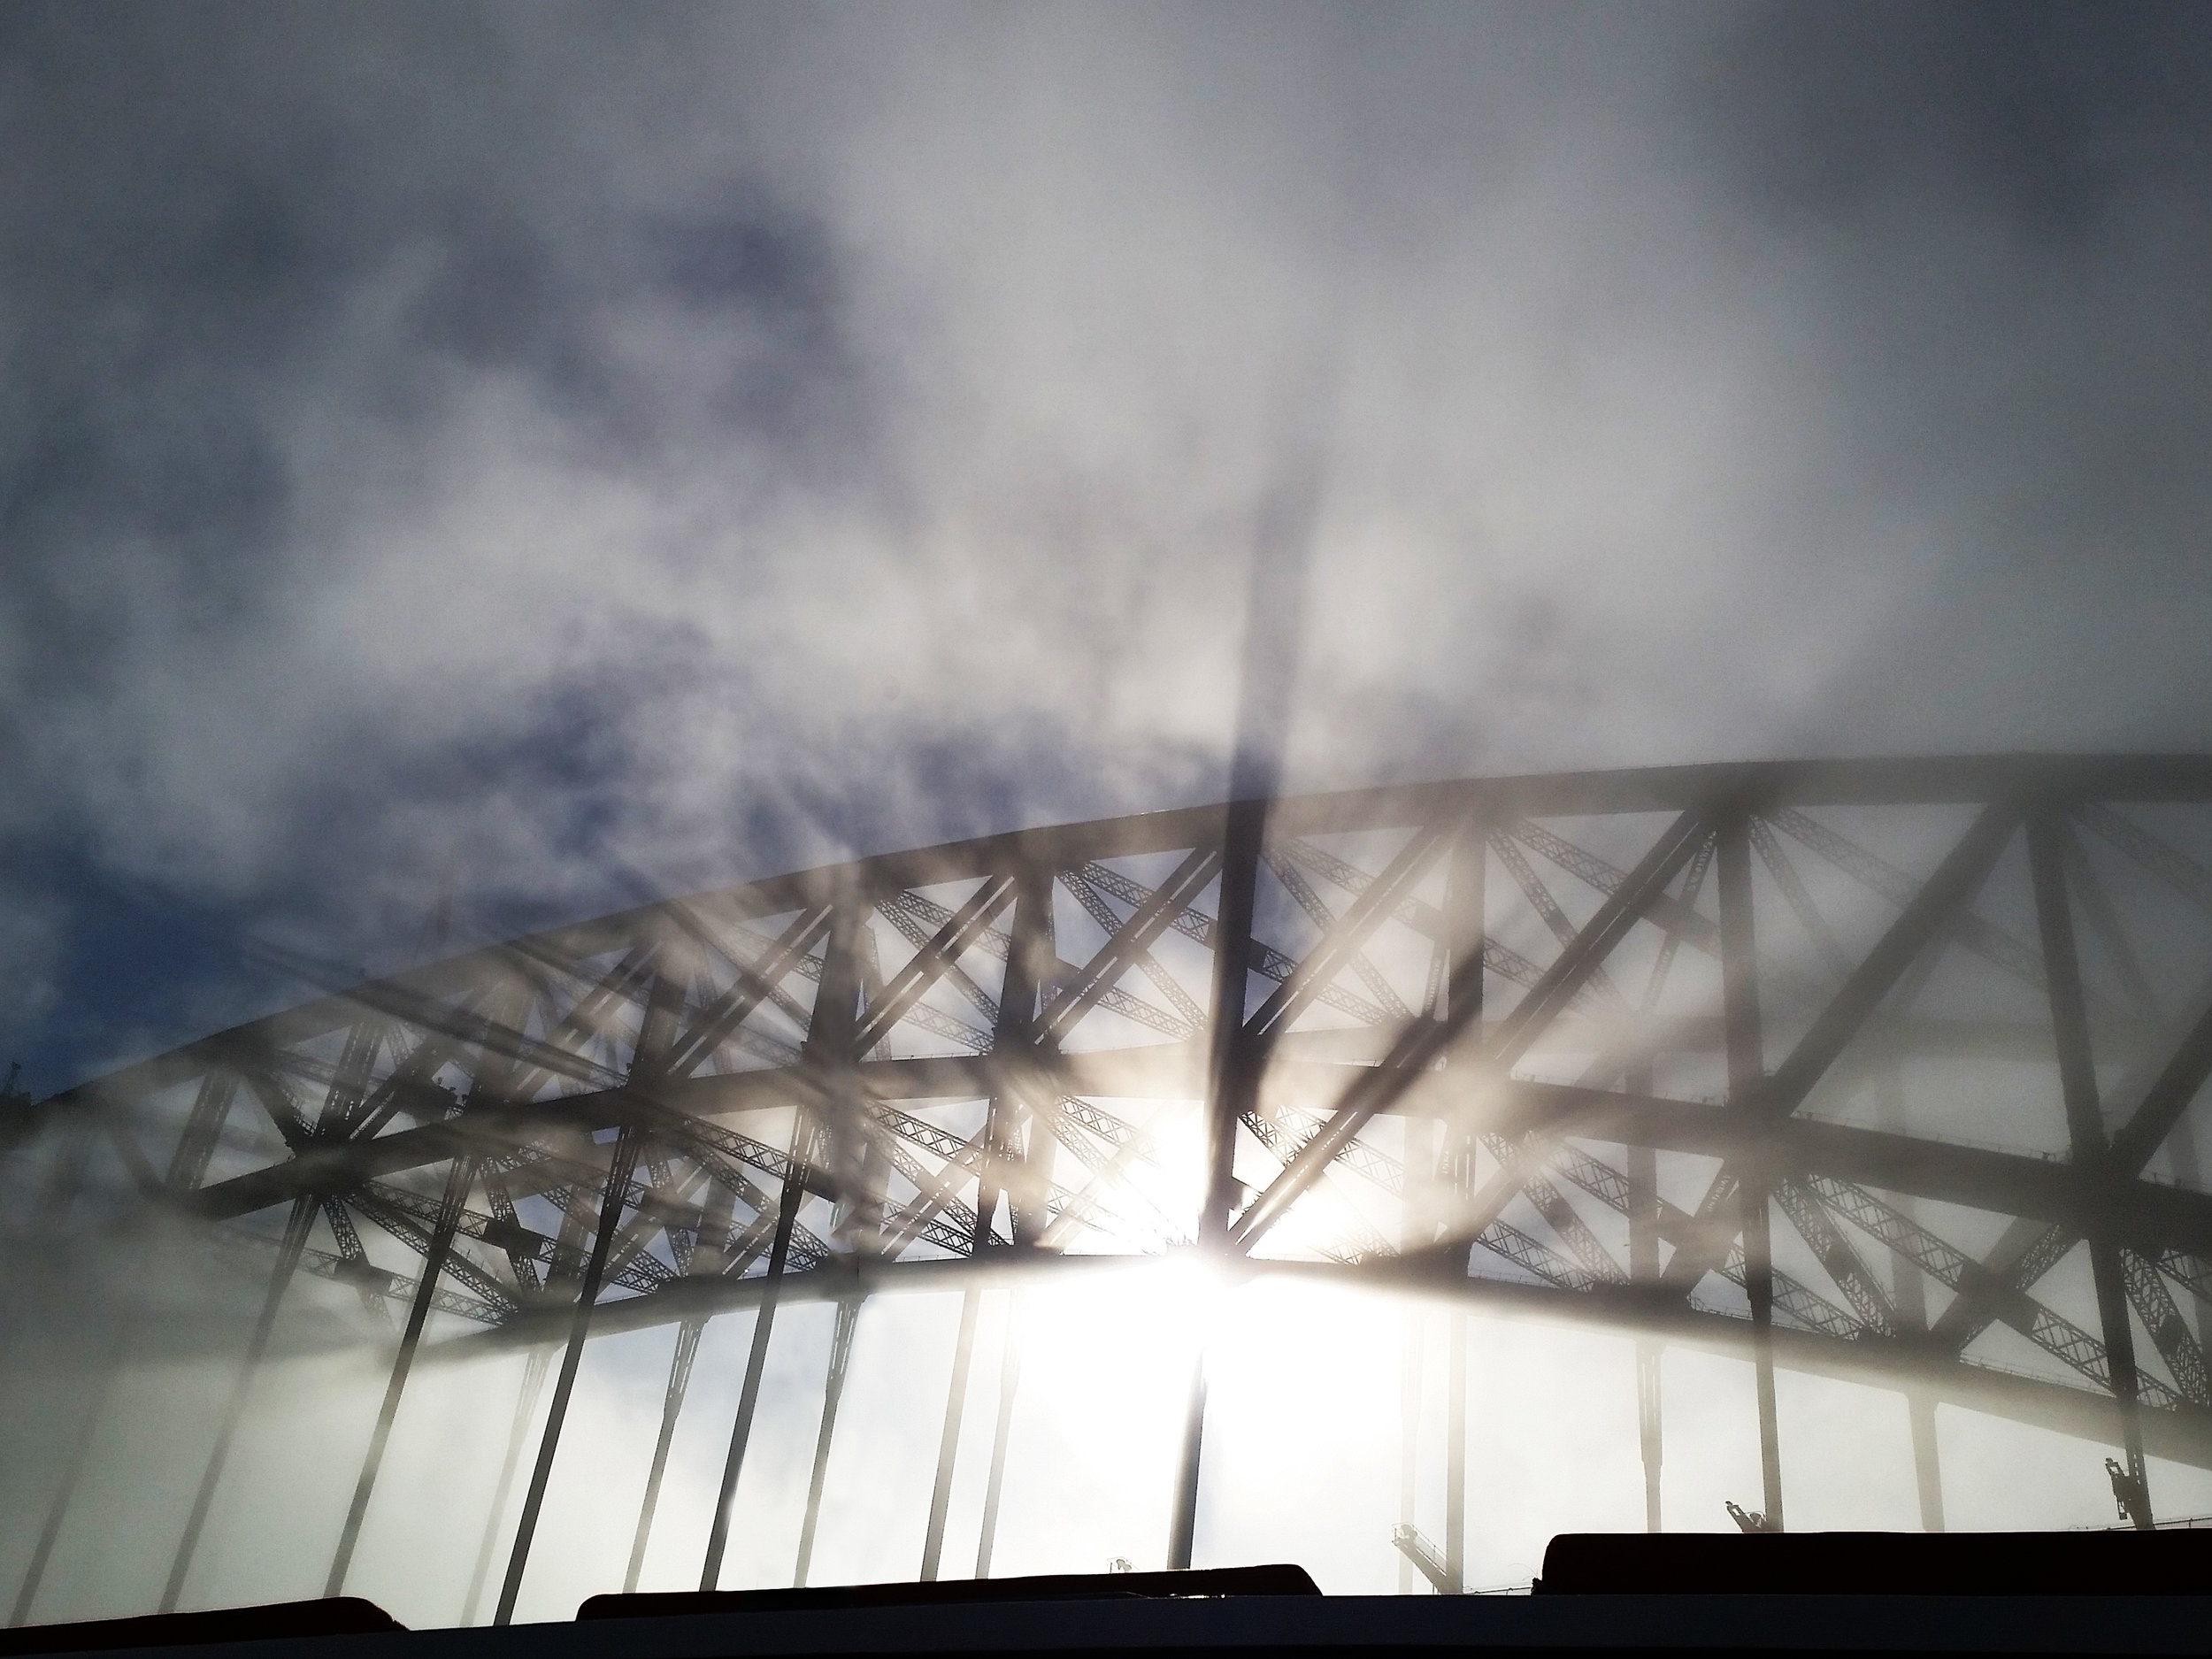 Bridge in Mist.jpg